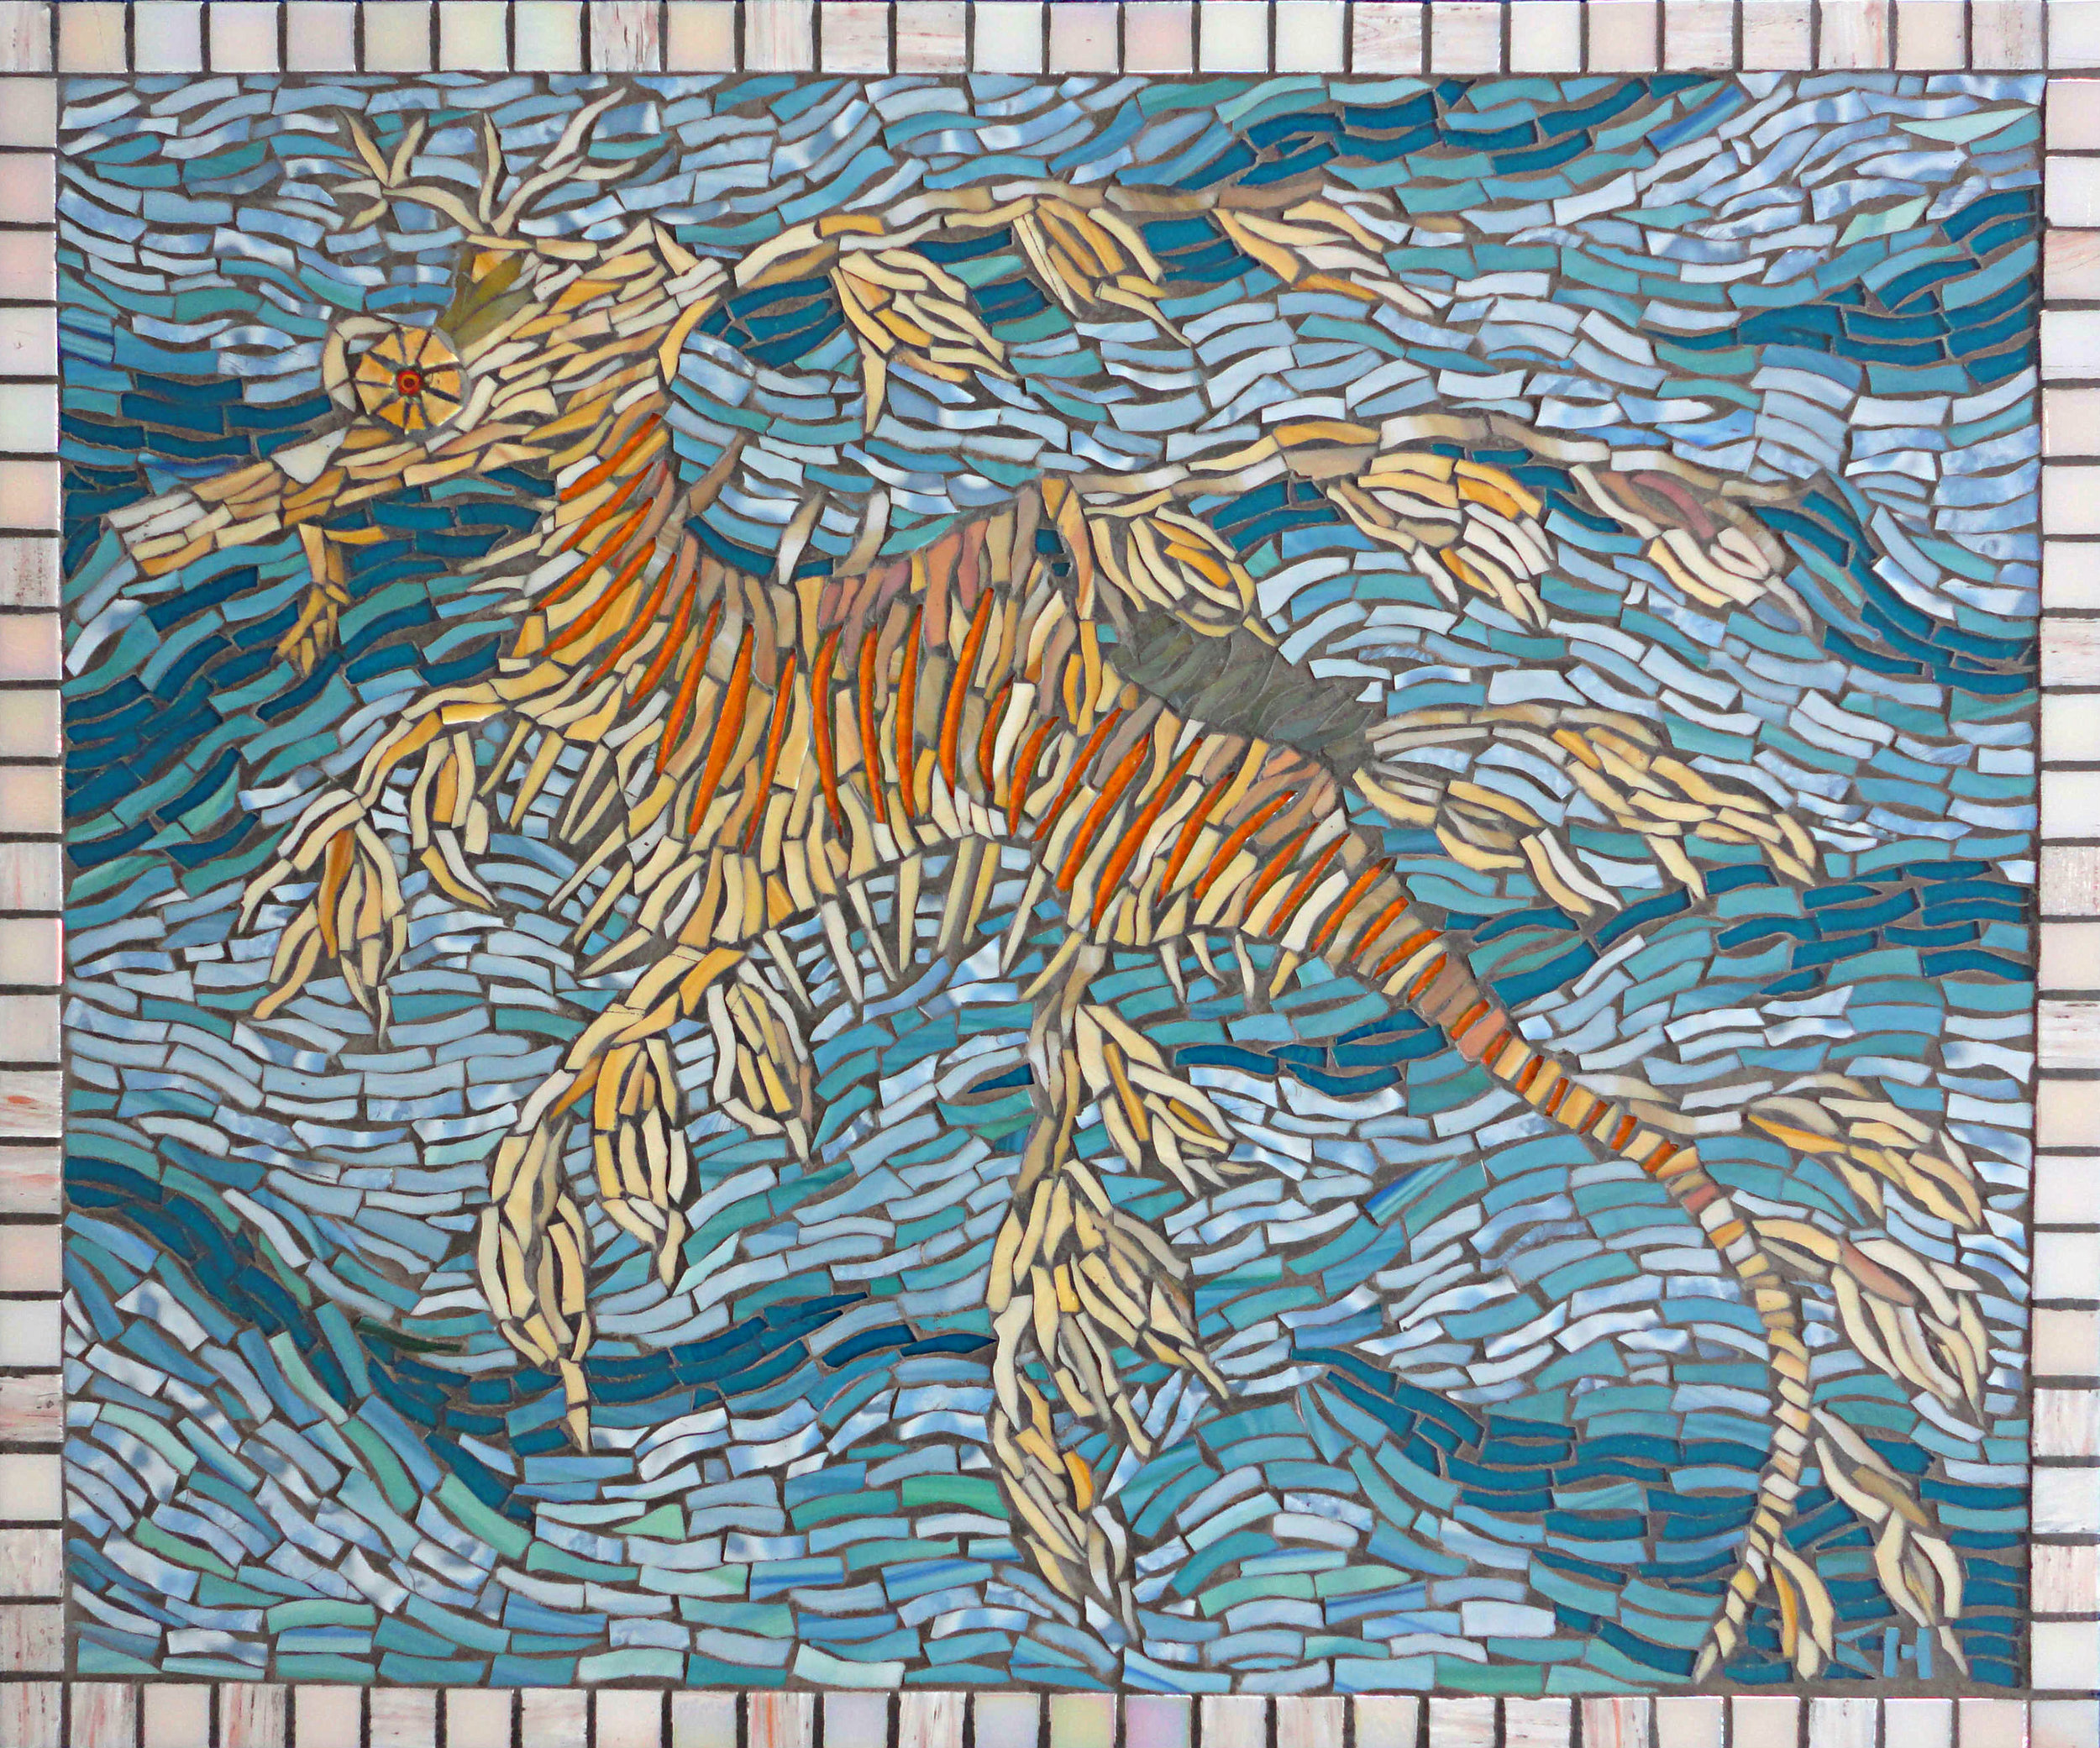 Leafy Sea Dragon (Stained Glass)